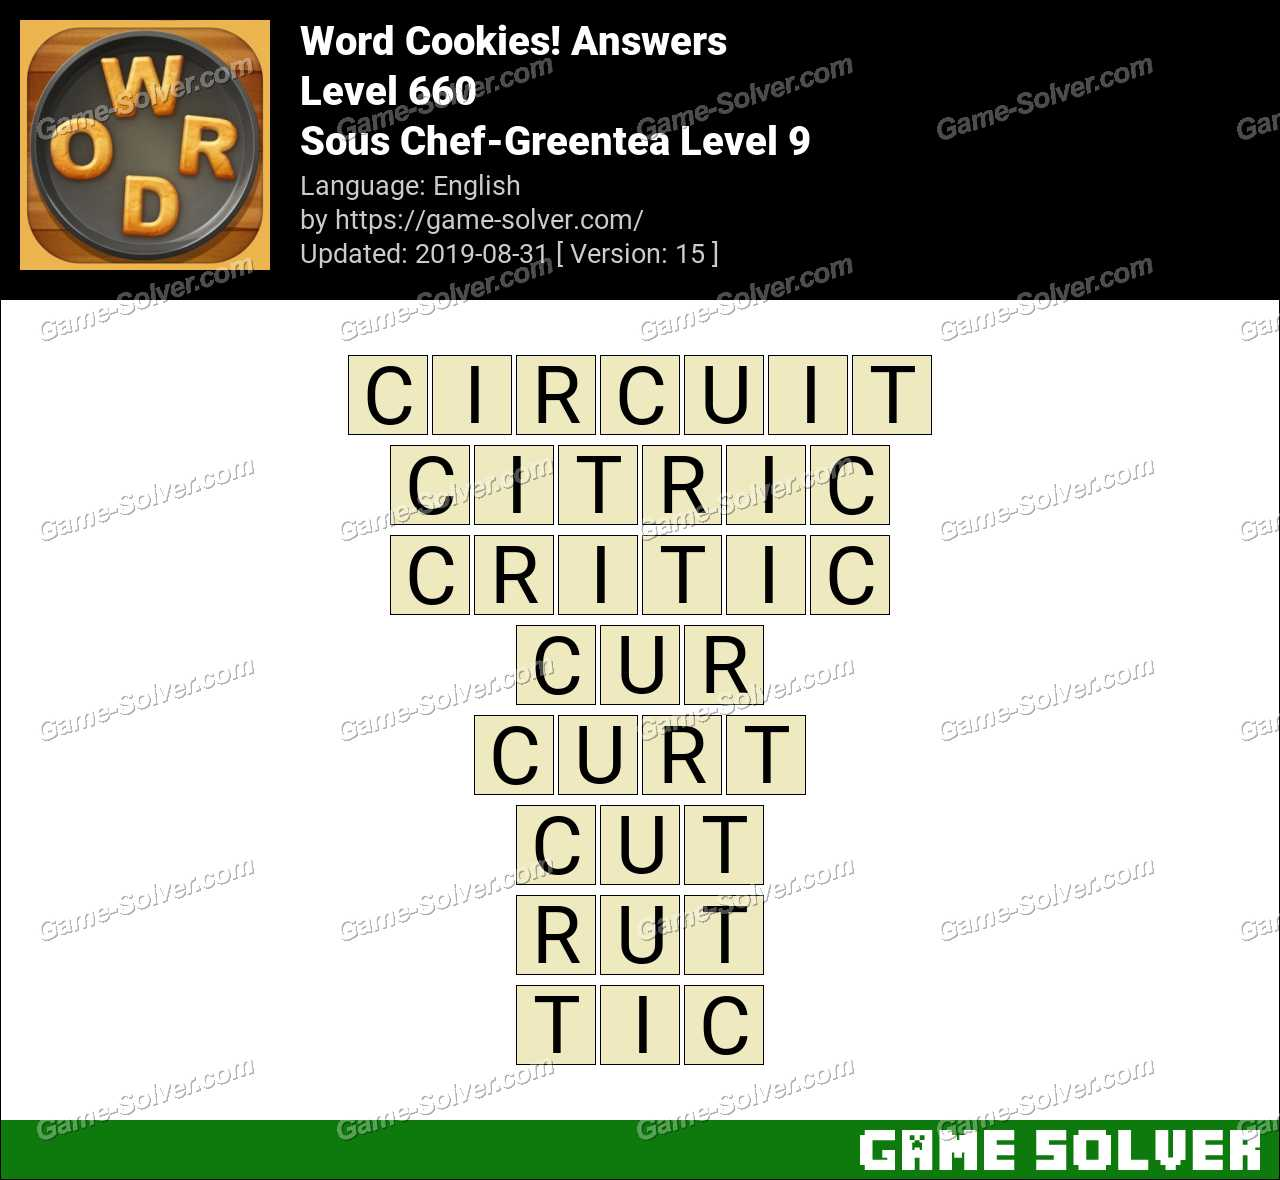 Word Cookies Sous Chef-Greentea Level 9 Answers